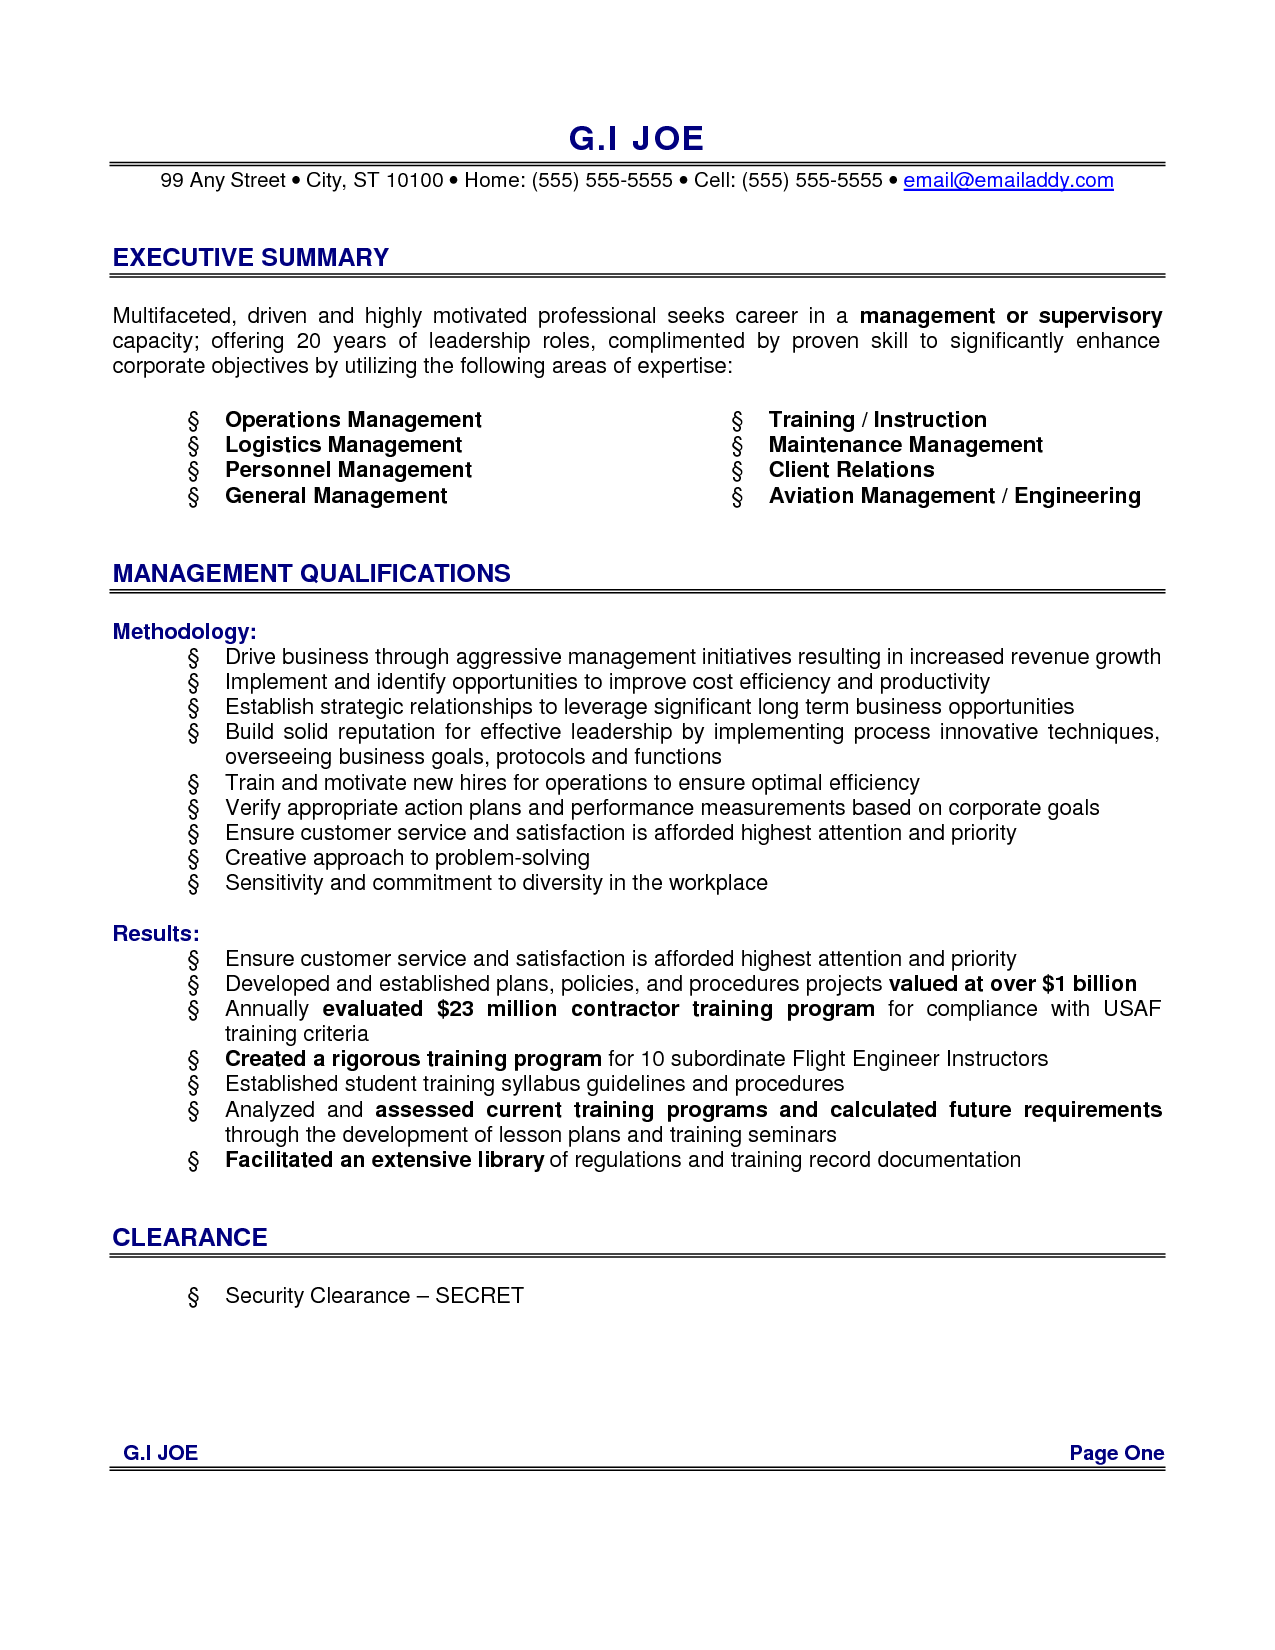 Resume Examples For Executive Summary With Management Qualifications , Executive  Resume Example As Writing Guidelines Nice Ideas